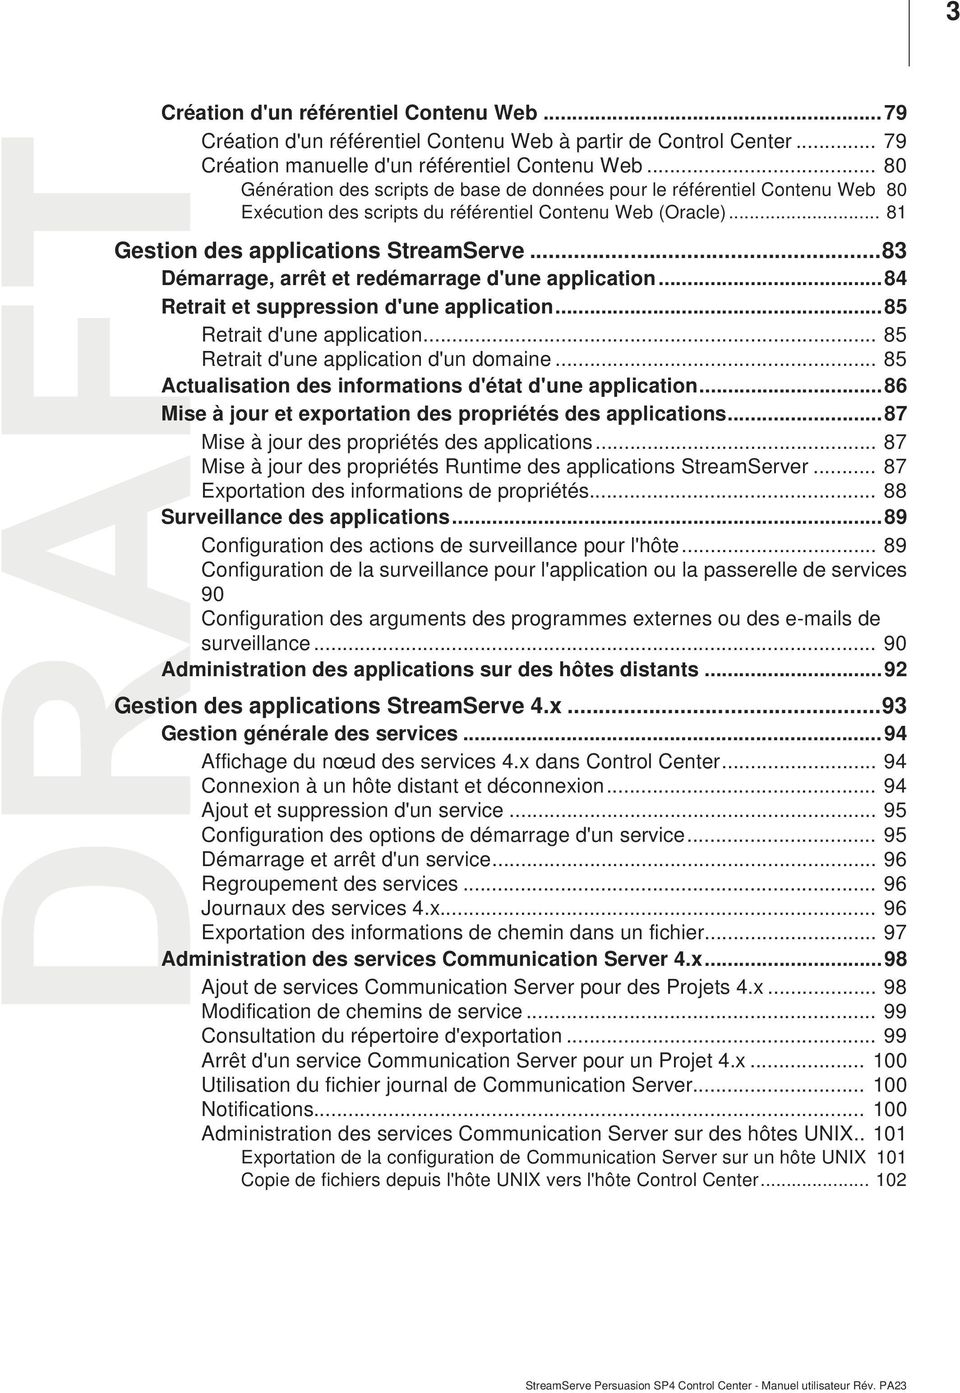 ..83 Démarrage, arrêt et redémarrage d'une application...84 Retrait et suppression d'une application...85 Retrait d'une application... 85 Retrait d'une application d'un domaine.